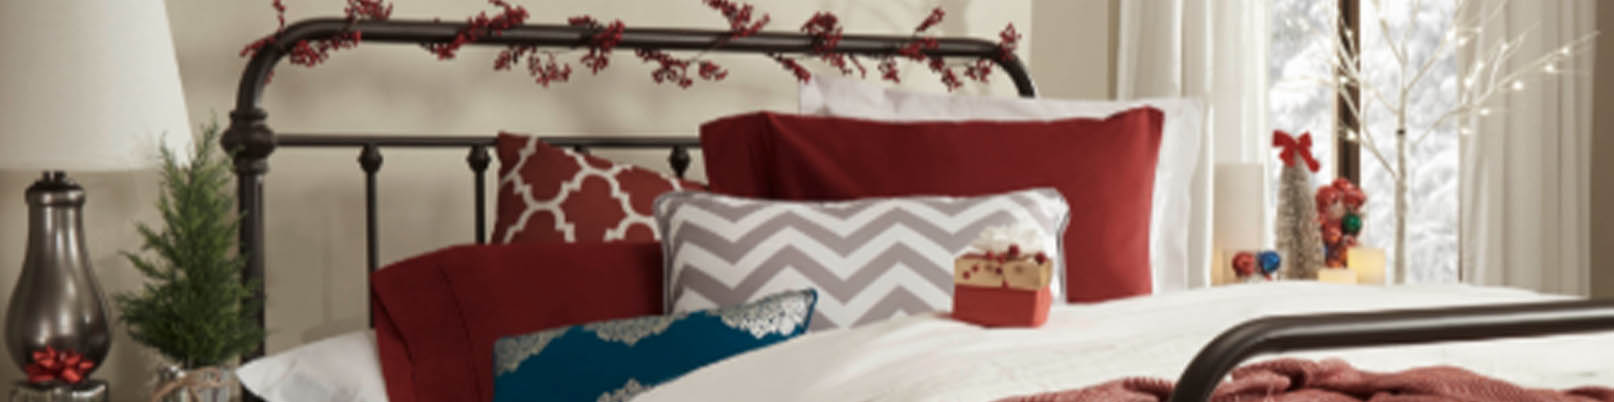 iNSPIRE Q holiday Bedroom decor showcasing headboard